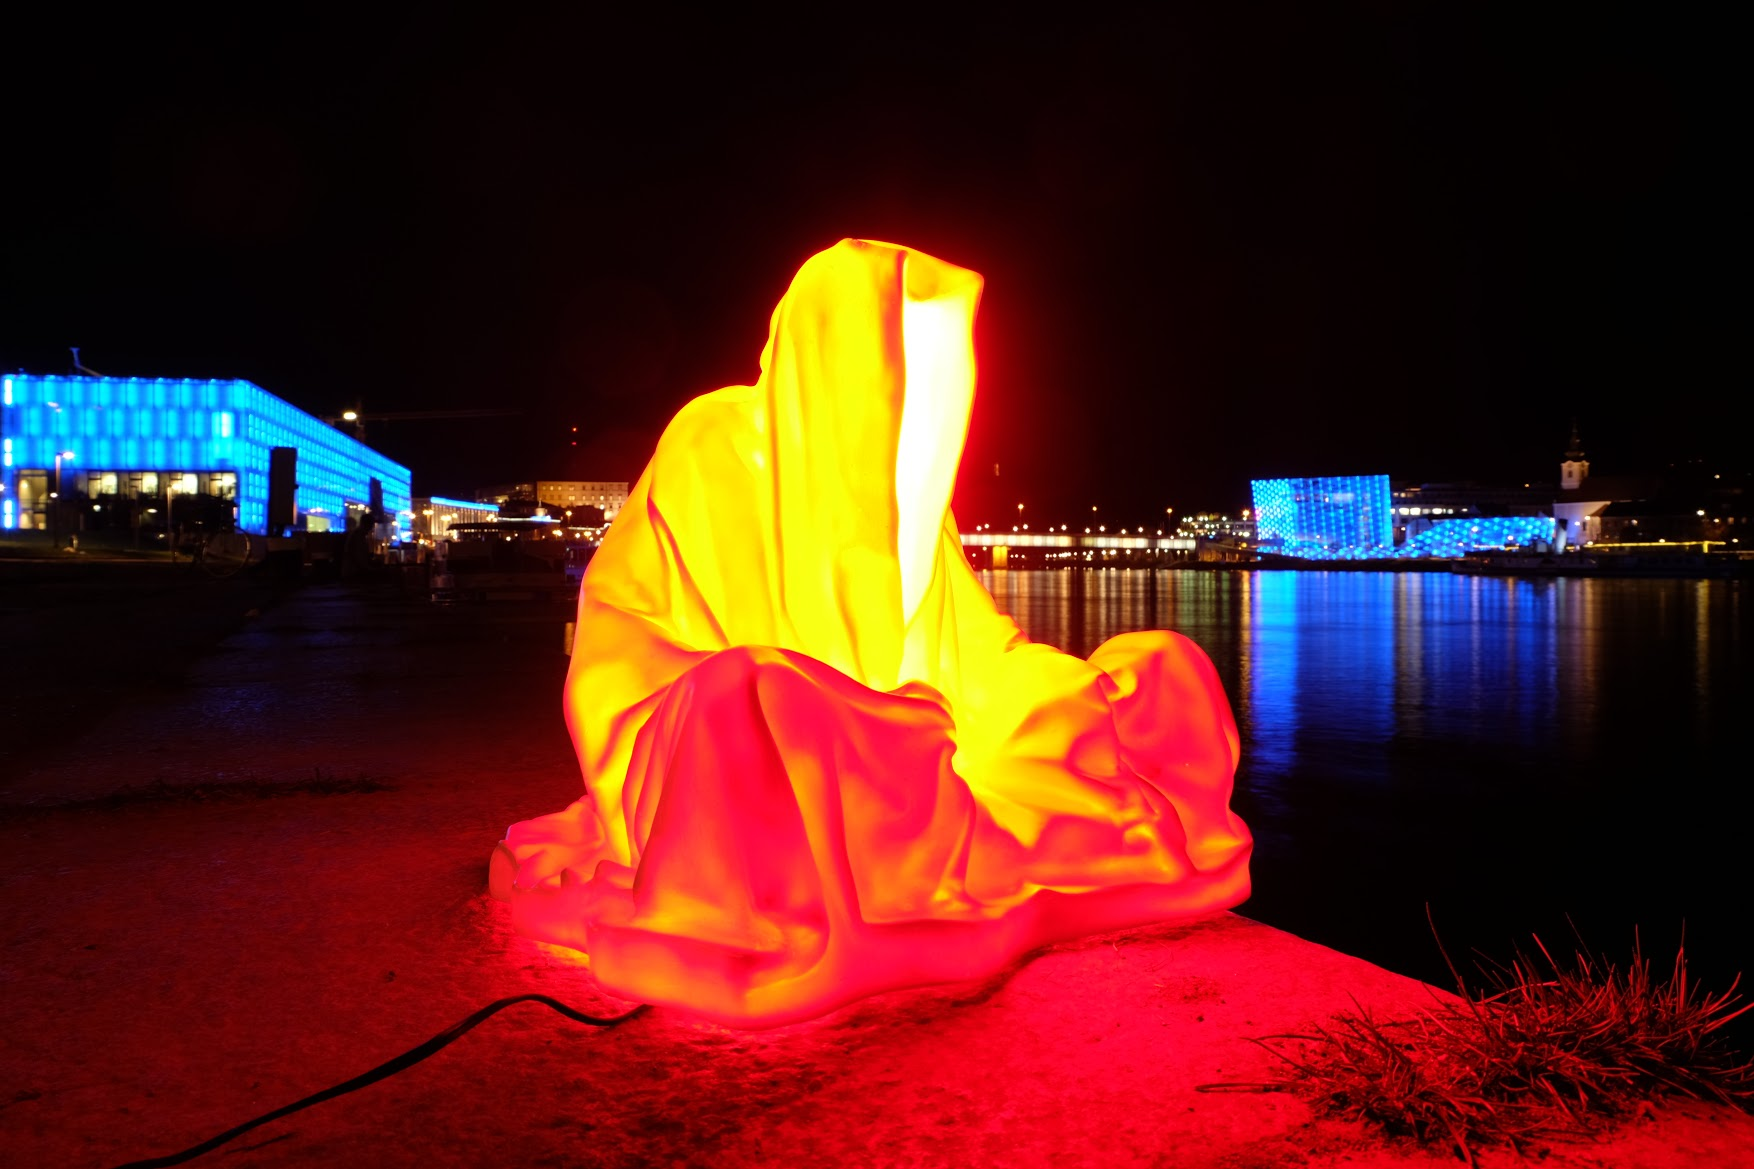 guardians of time manfred kielnhofer linz light art contemporary art sculpture statue modern design lamp light lumina 1810